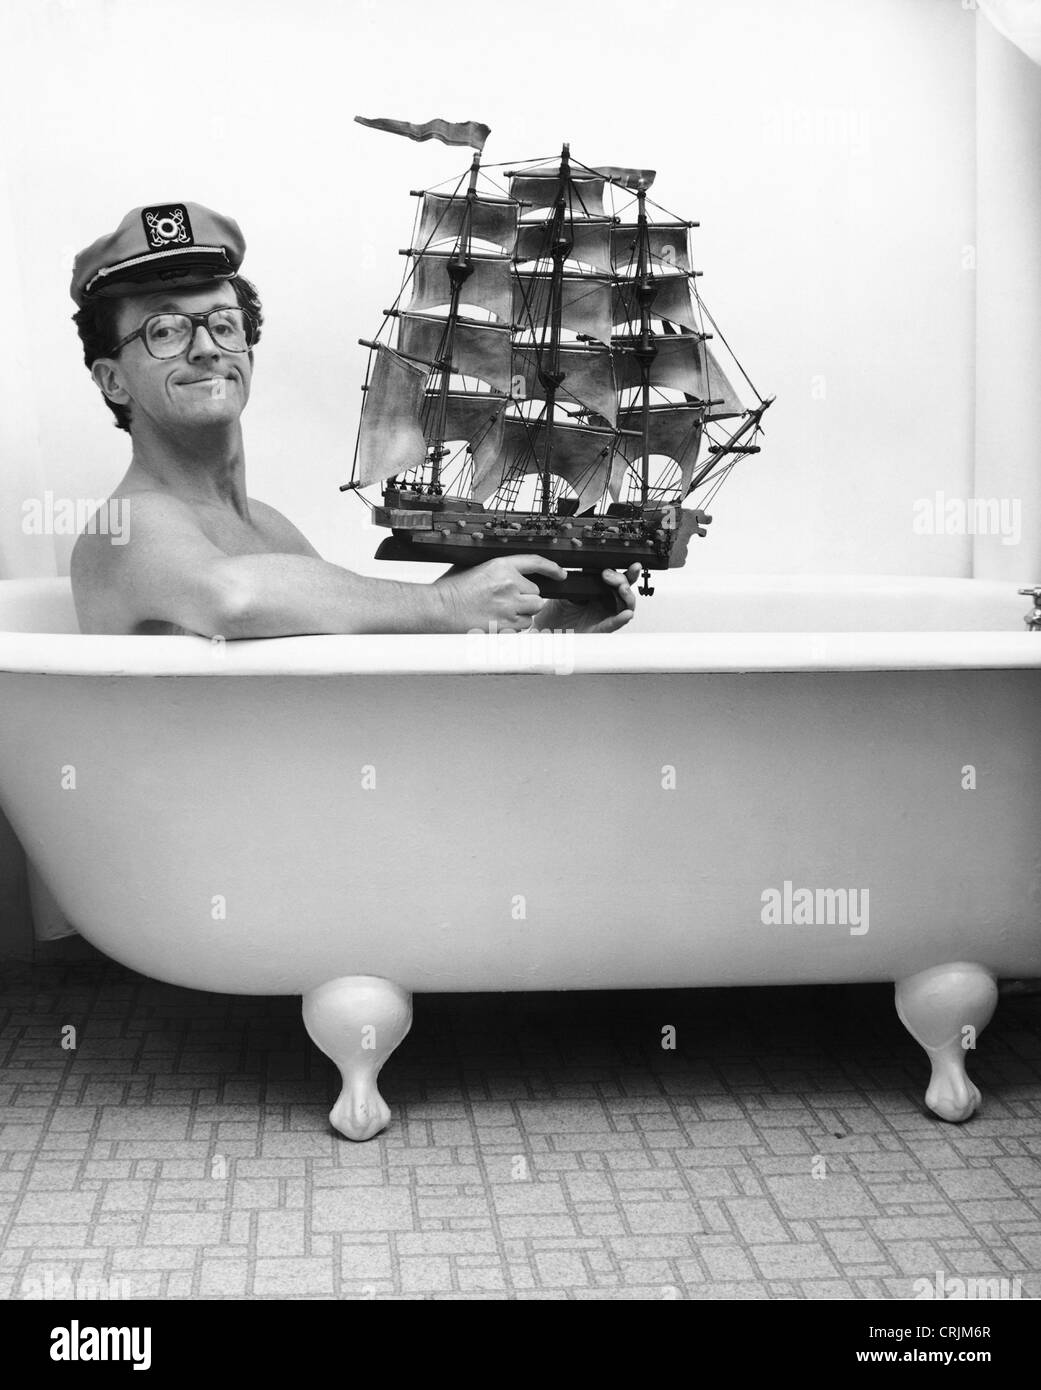 Bath Toy Black and White Stock Photos & Images - Alamy